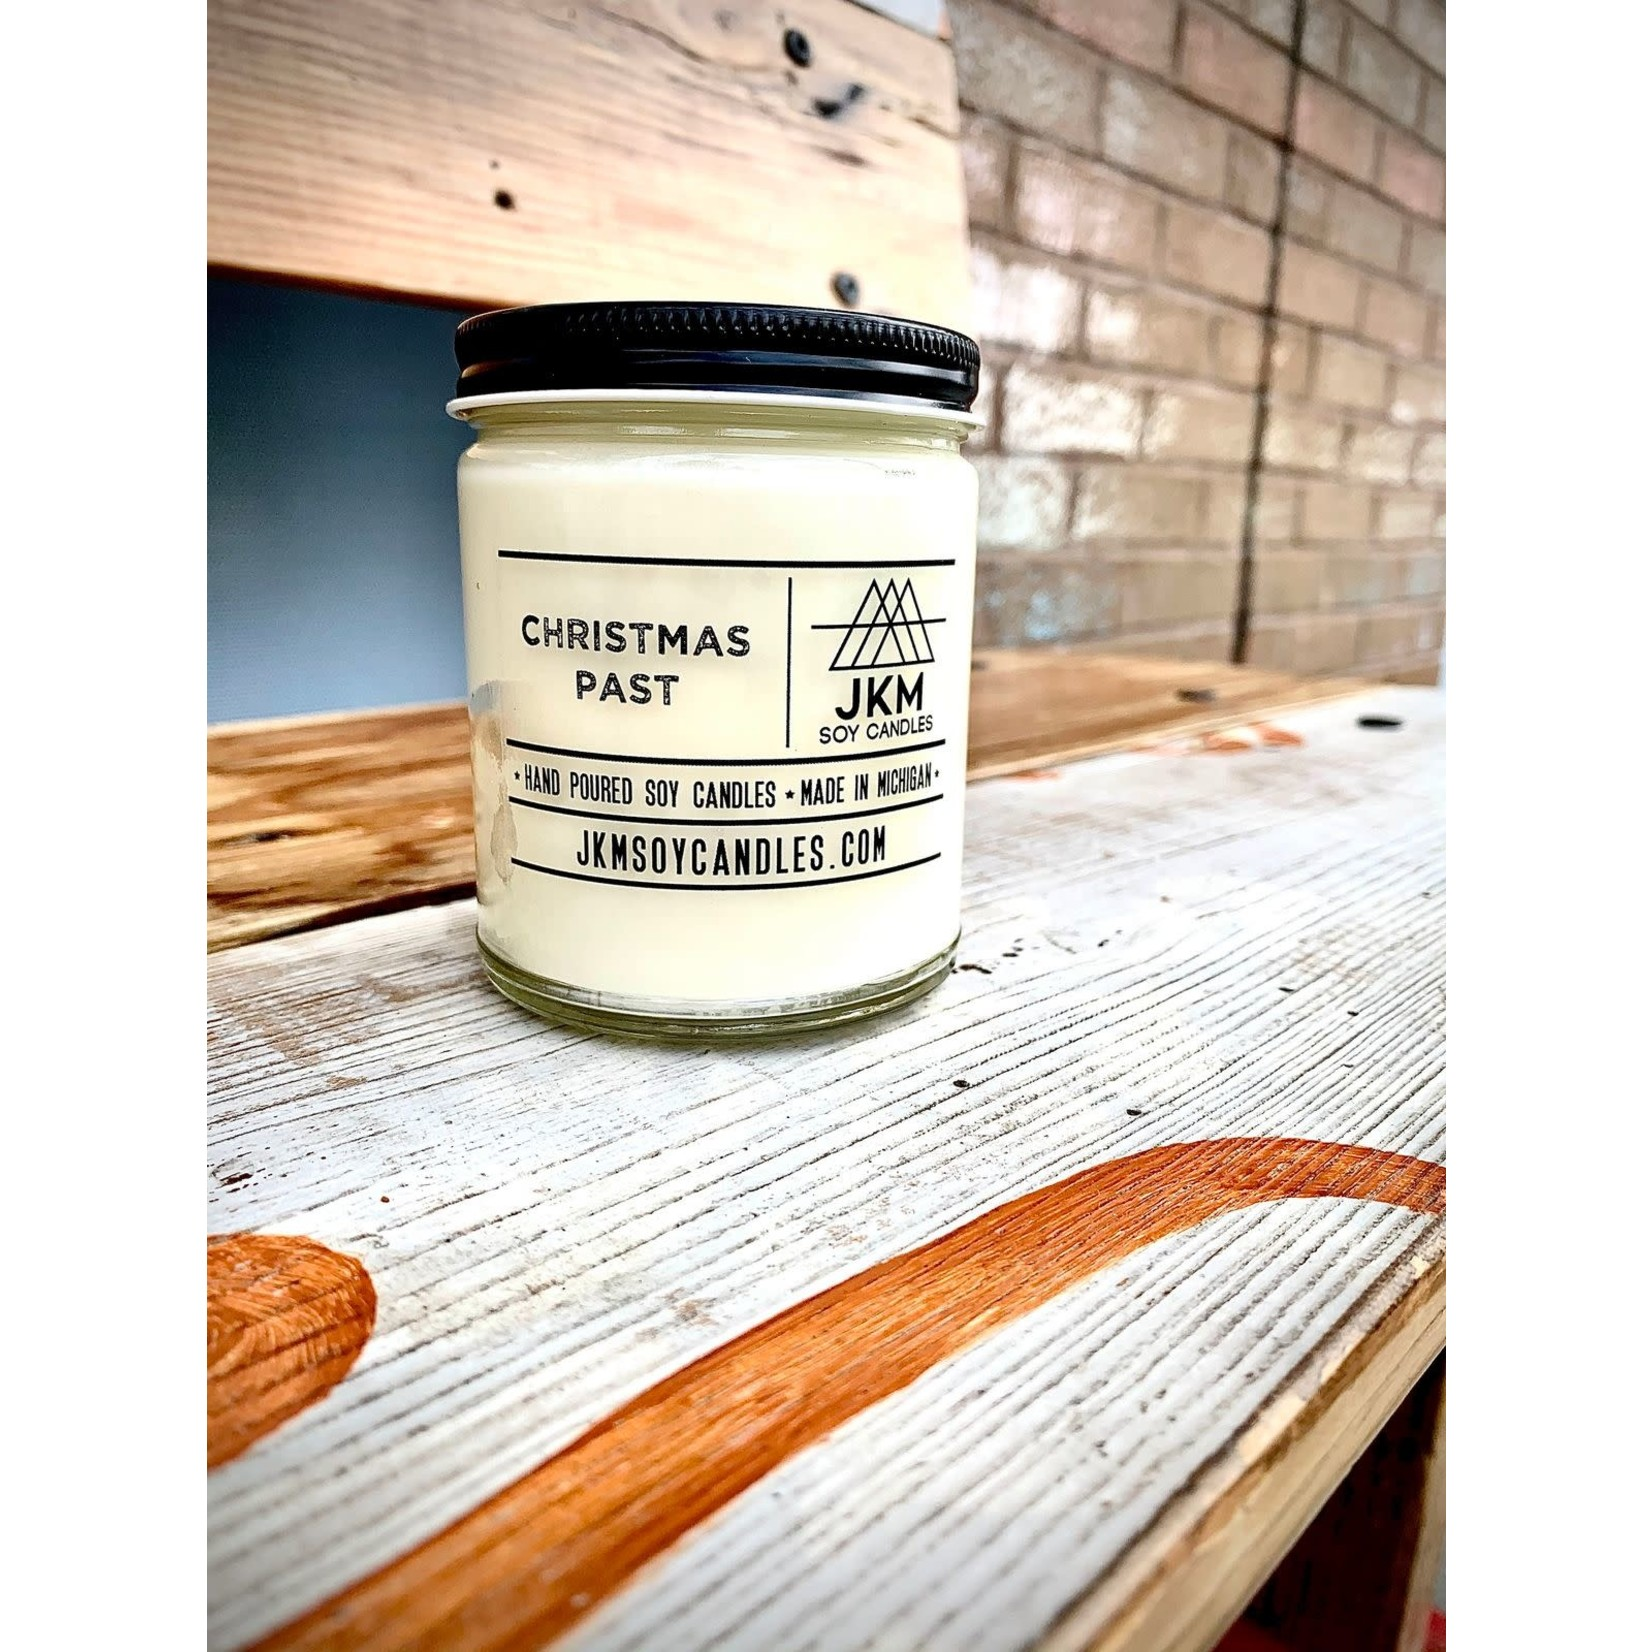 JKM Soy Candles HC: Holiday Collection Candles